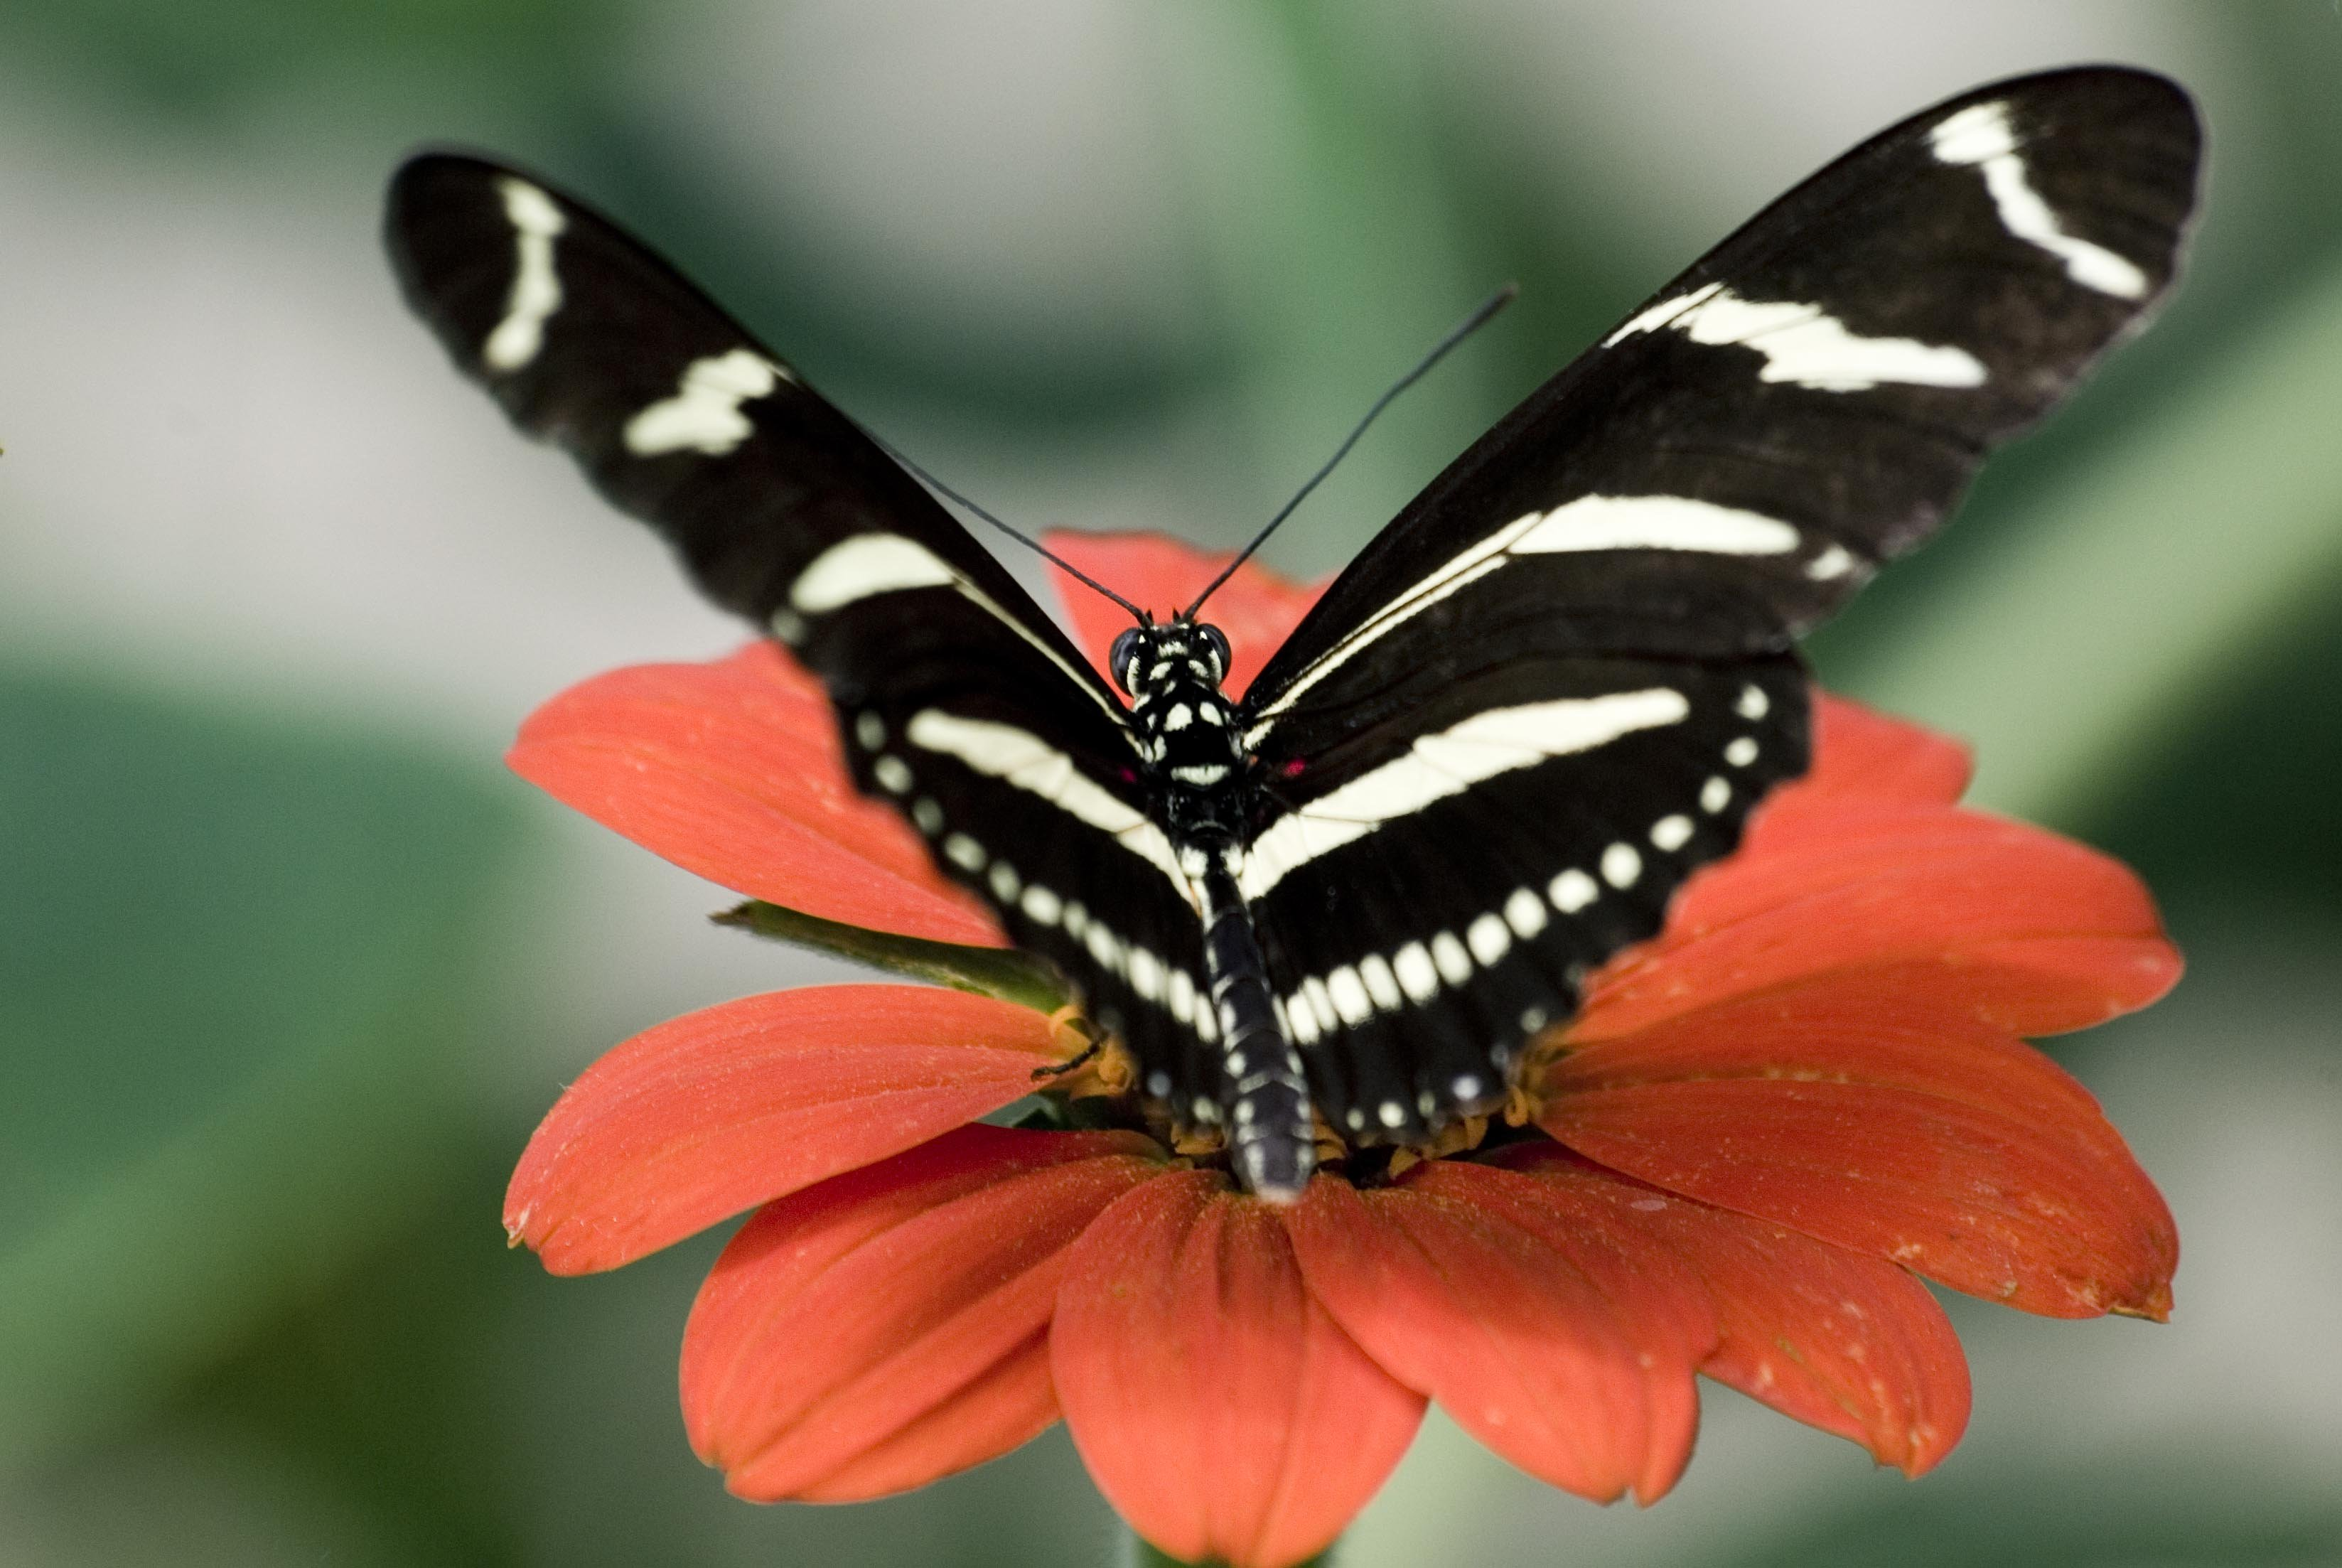 Cute 3d Cartoon Wallpapers Big Black And White Butterfly On A Flower